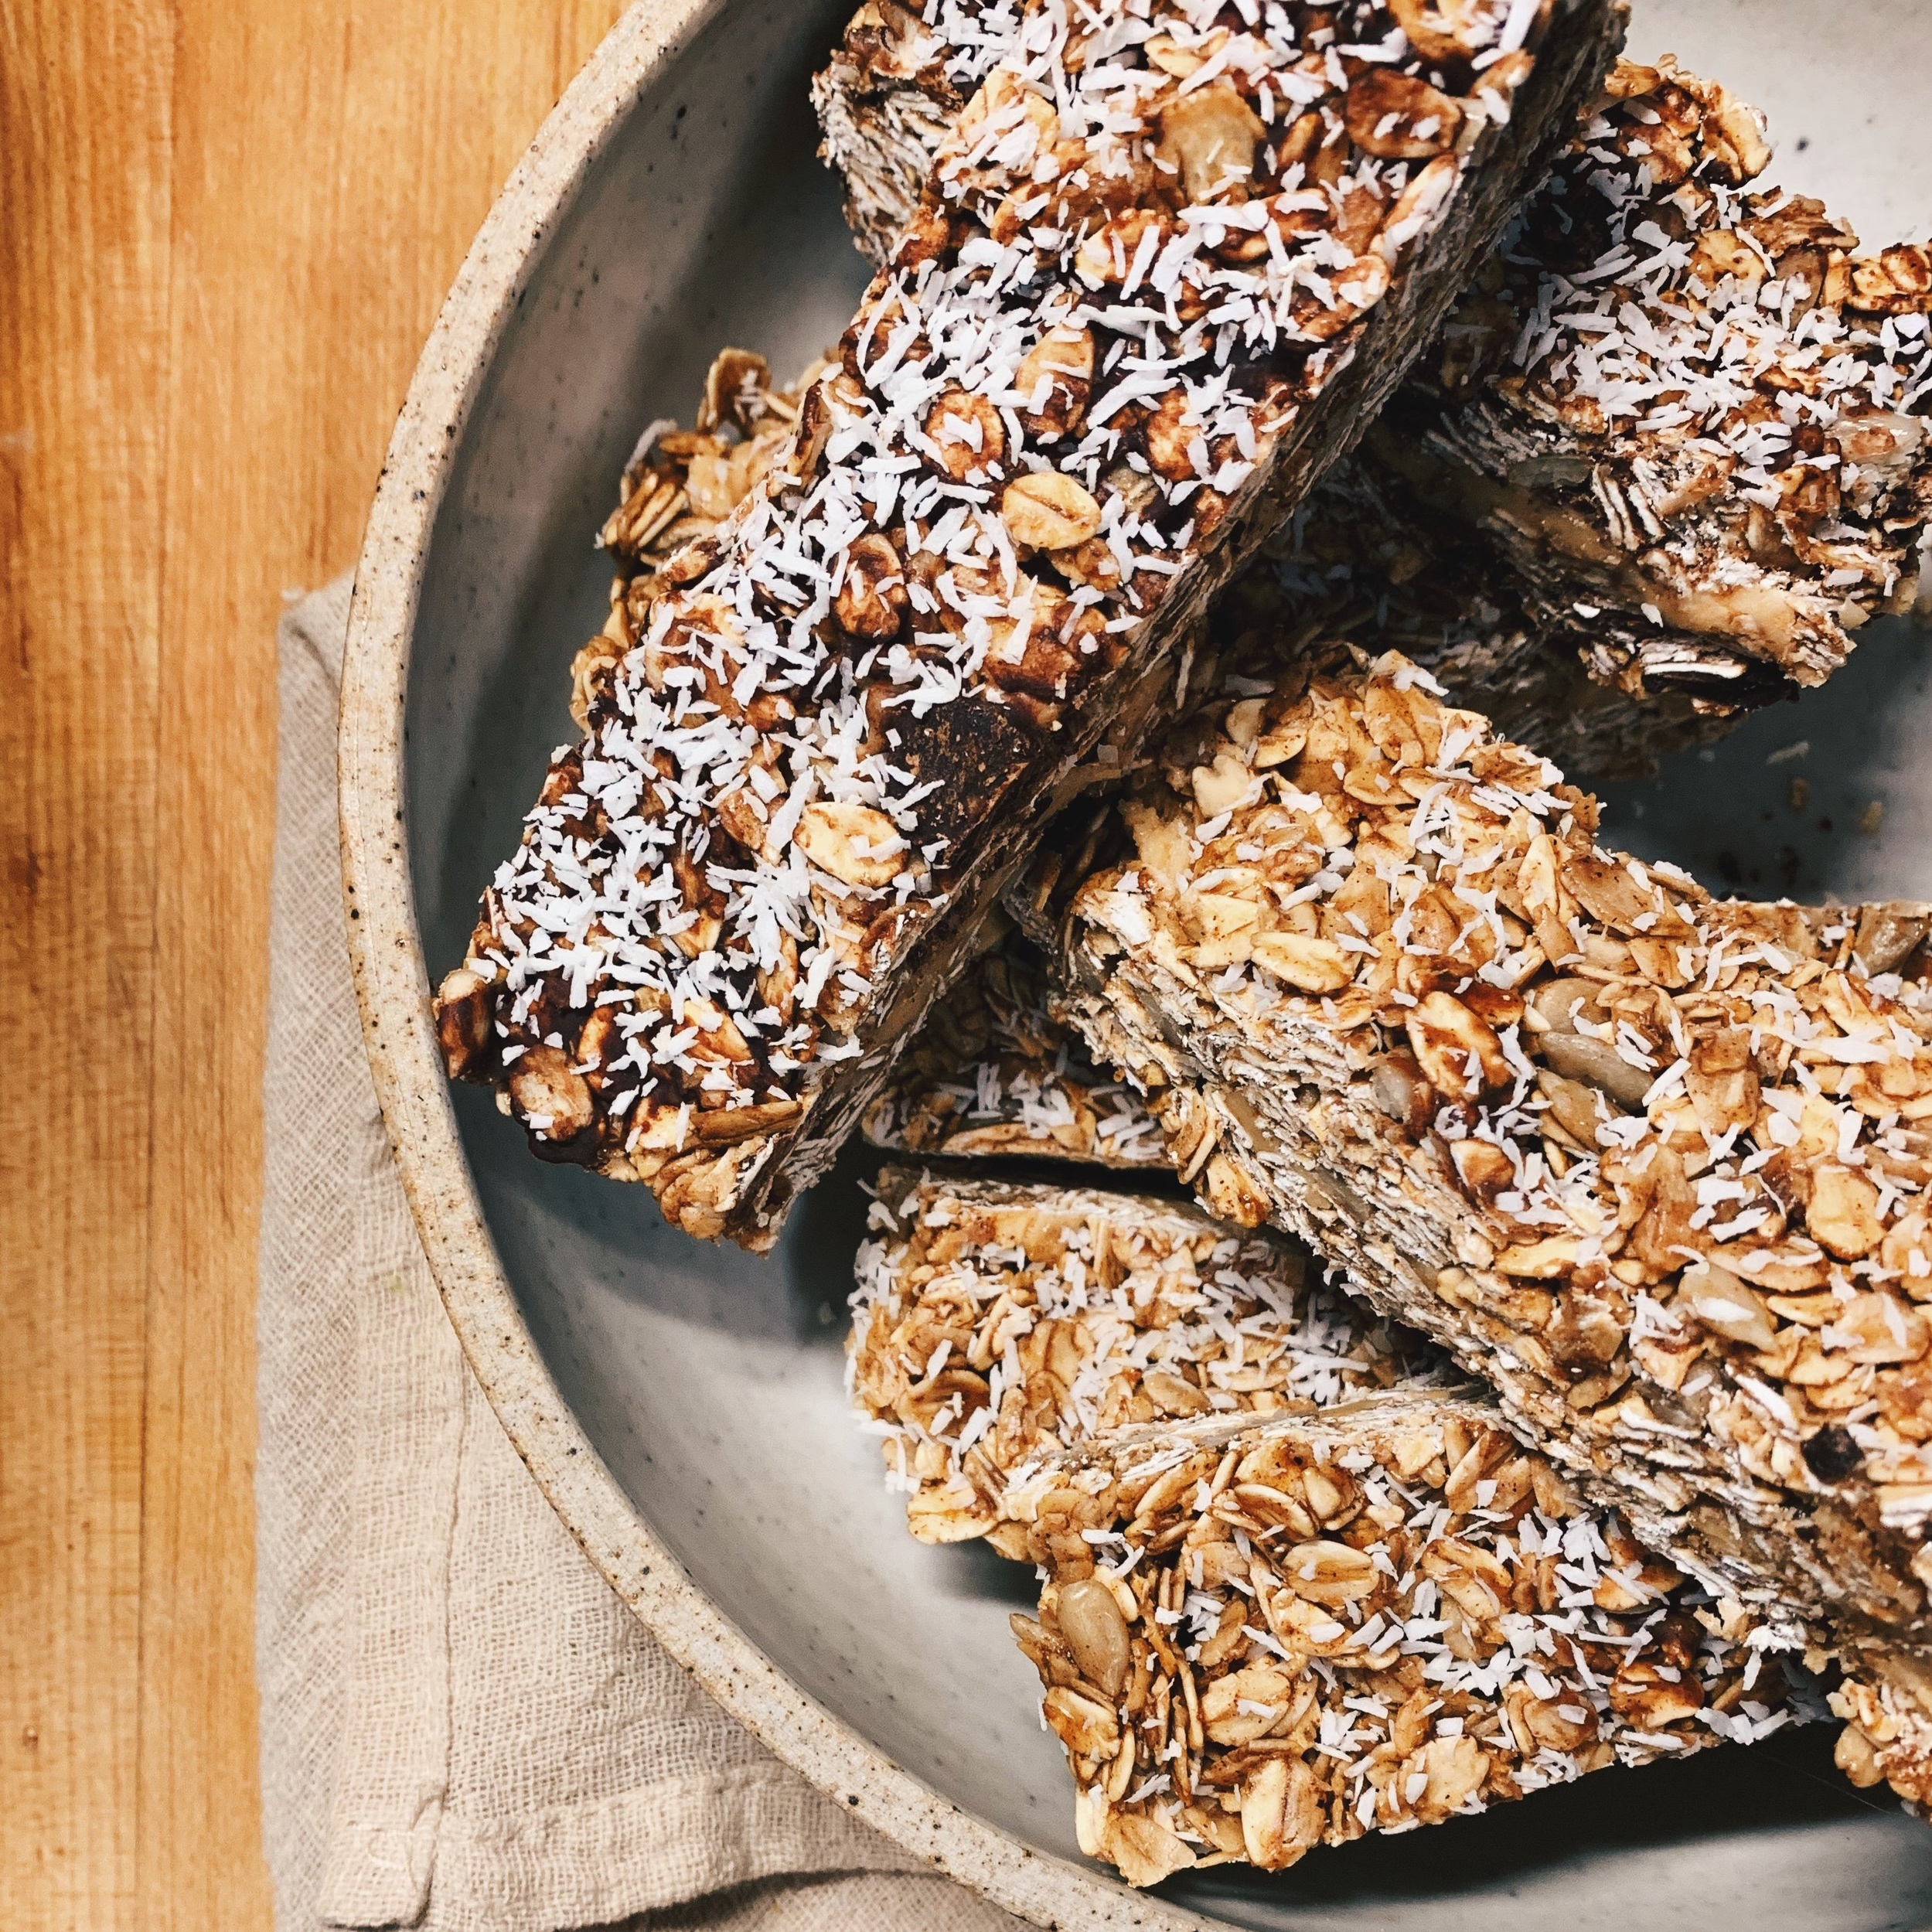 Homemade Granola Bars   These were easy and are a HIT in the house right now! I made a few adjustments:  - Excluded chocolate chips from one (Used Enjoy Life)  - Removed some of the Coconut Sugar (The Maple Syrup was enough sweetness for us) - Added a middle layer of Peanut Butter  - Added Sunflower seeds - Baked the oats for a bit longer for extra toasty-ness and crunch - Removed Chocolate Drizzle and sprinkled shredded coconut instead on top   Recipe    Here   !